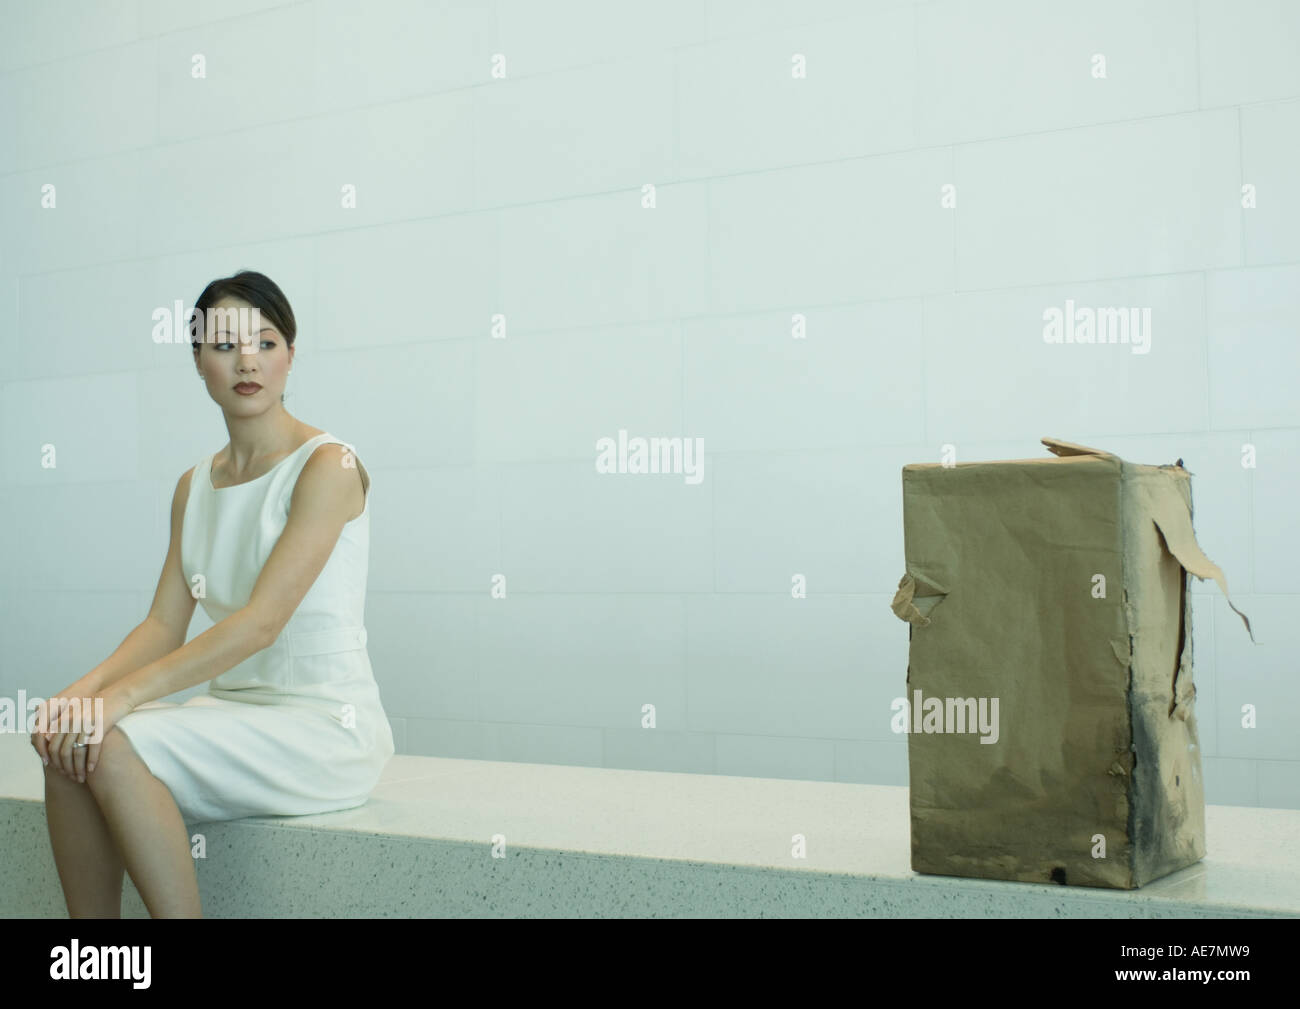 Woman sitting on bench looking at suspicious package - Stock Image